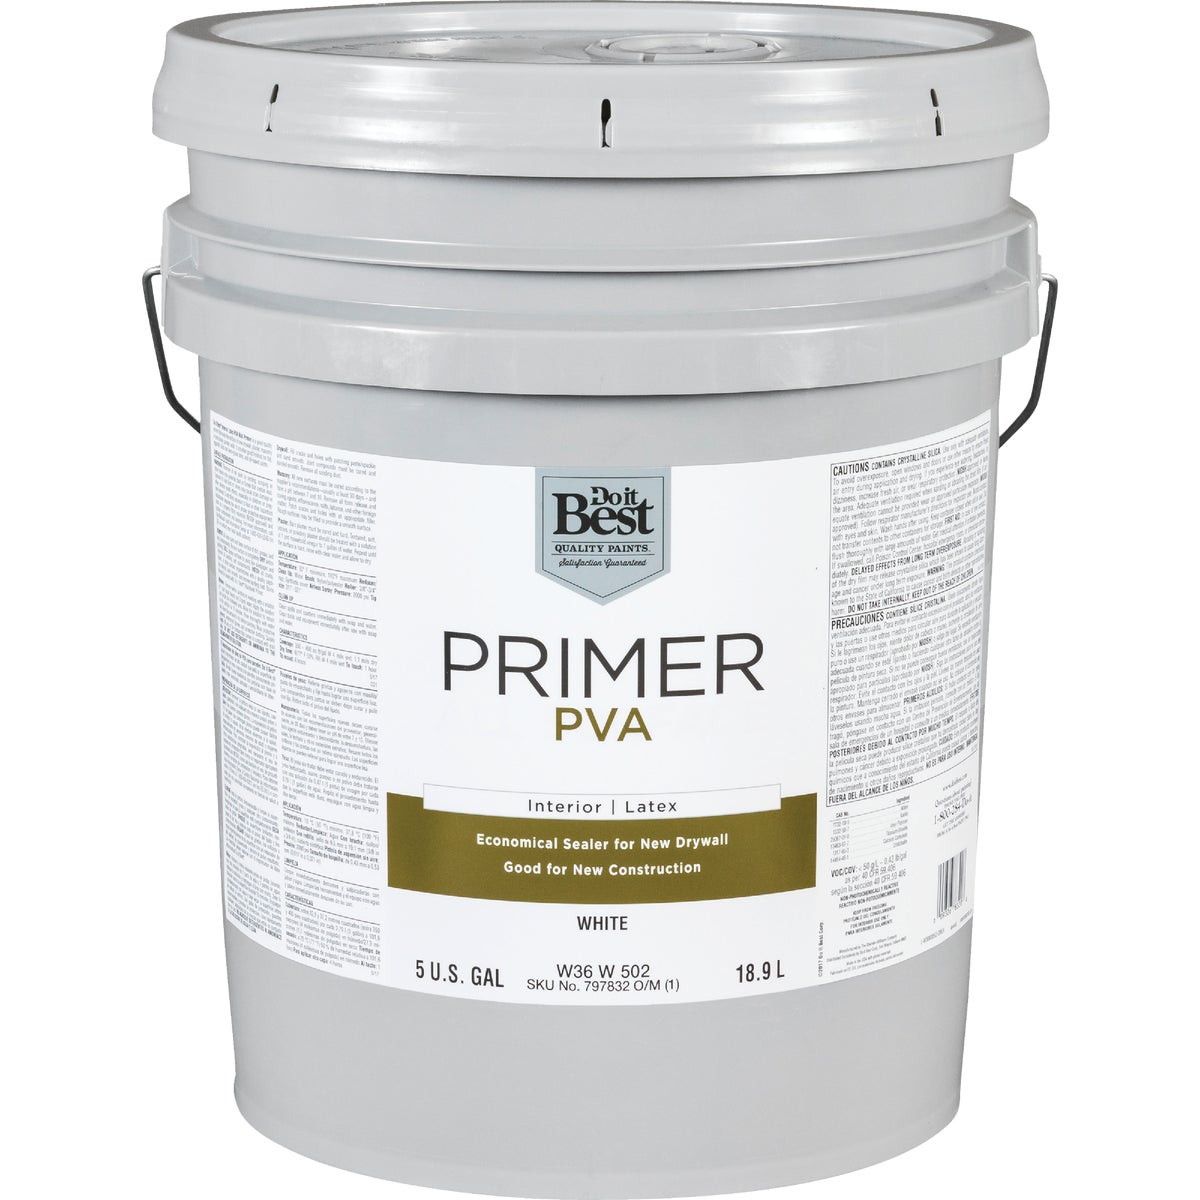 INT 5-G LATEX PVA PRIMER - W36W00502-20 by Do it Best